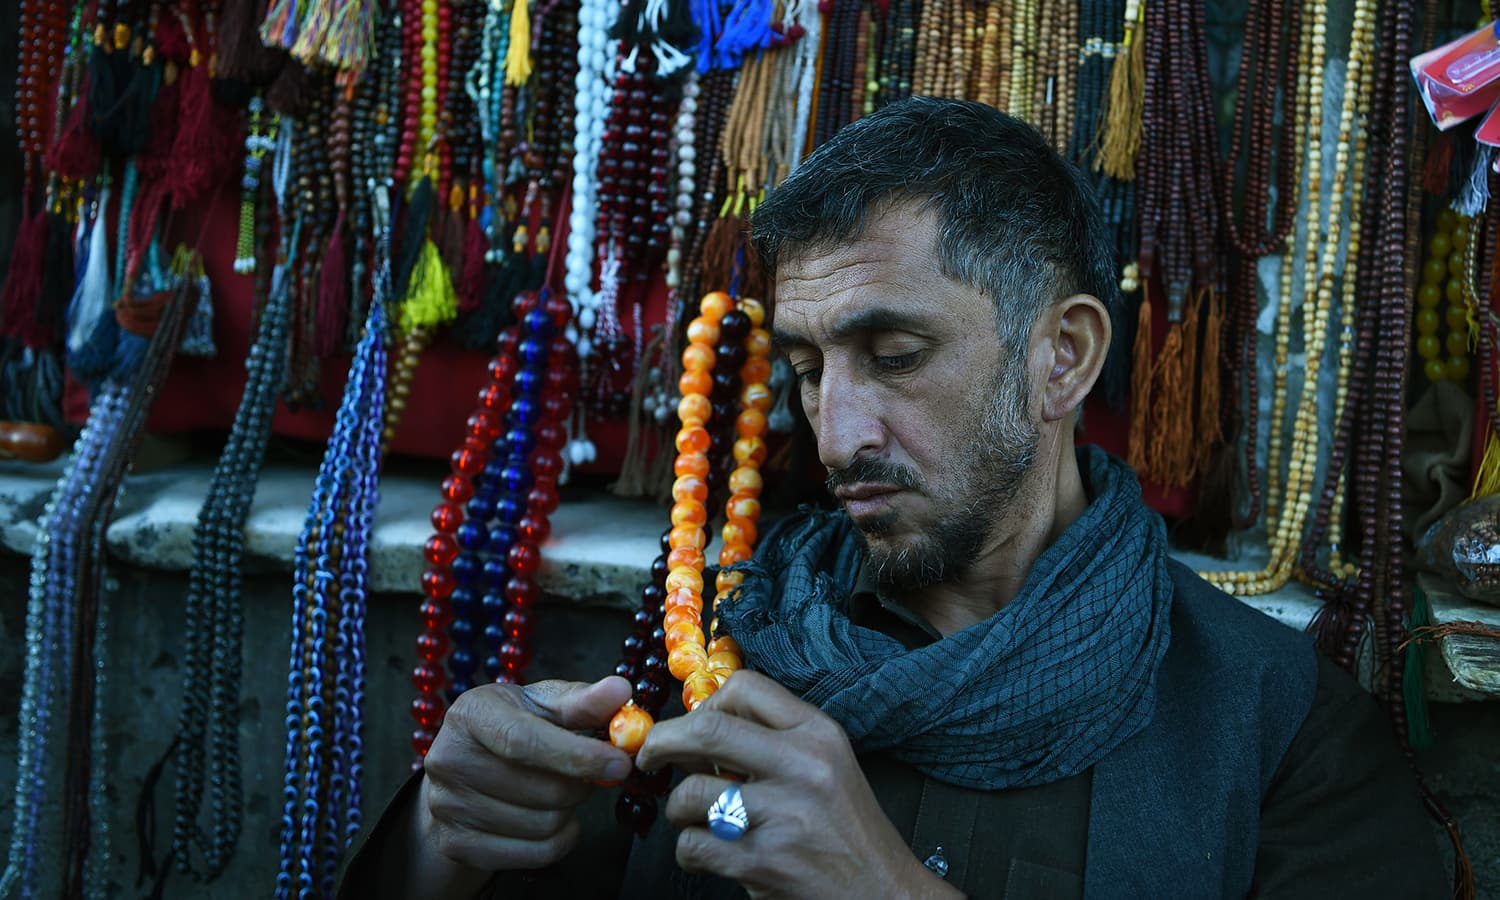 An Afghan vendor prepares prayer beads for sale ahead of the holy month of Ramazan at Pul-e-Khishti Mosque in Kabul. — AFP